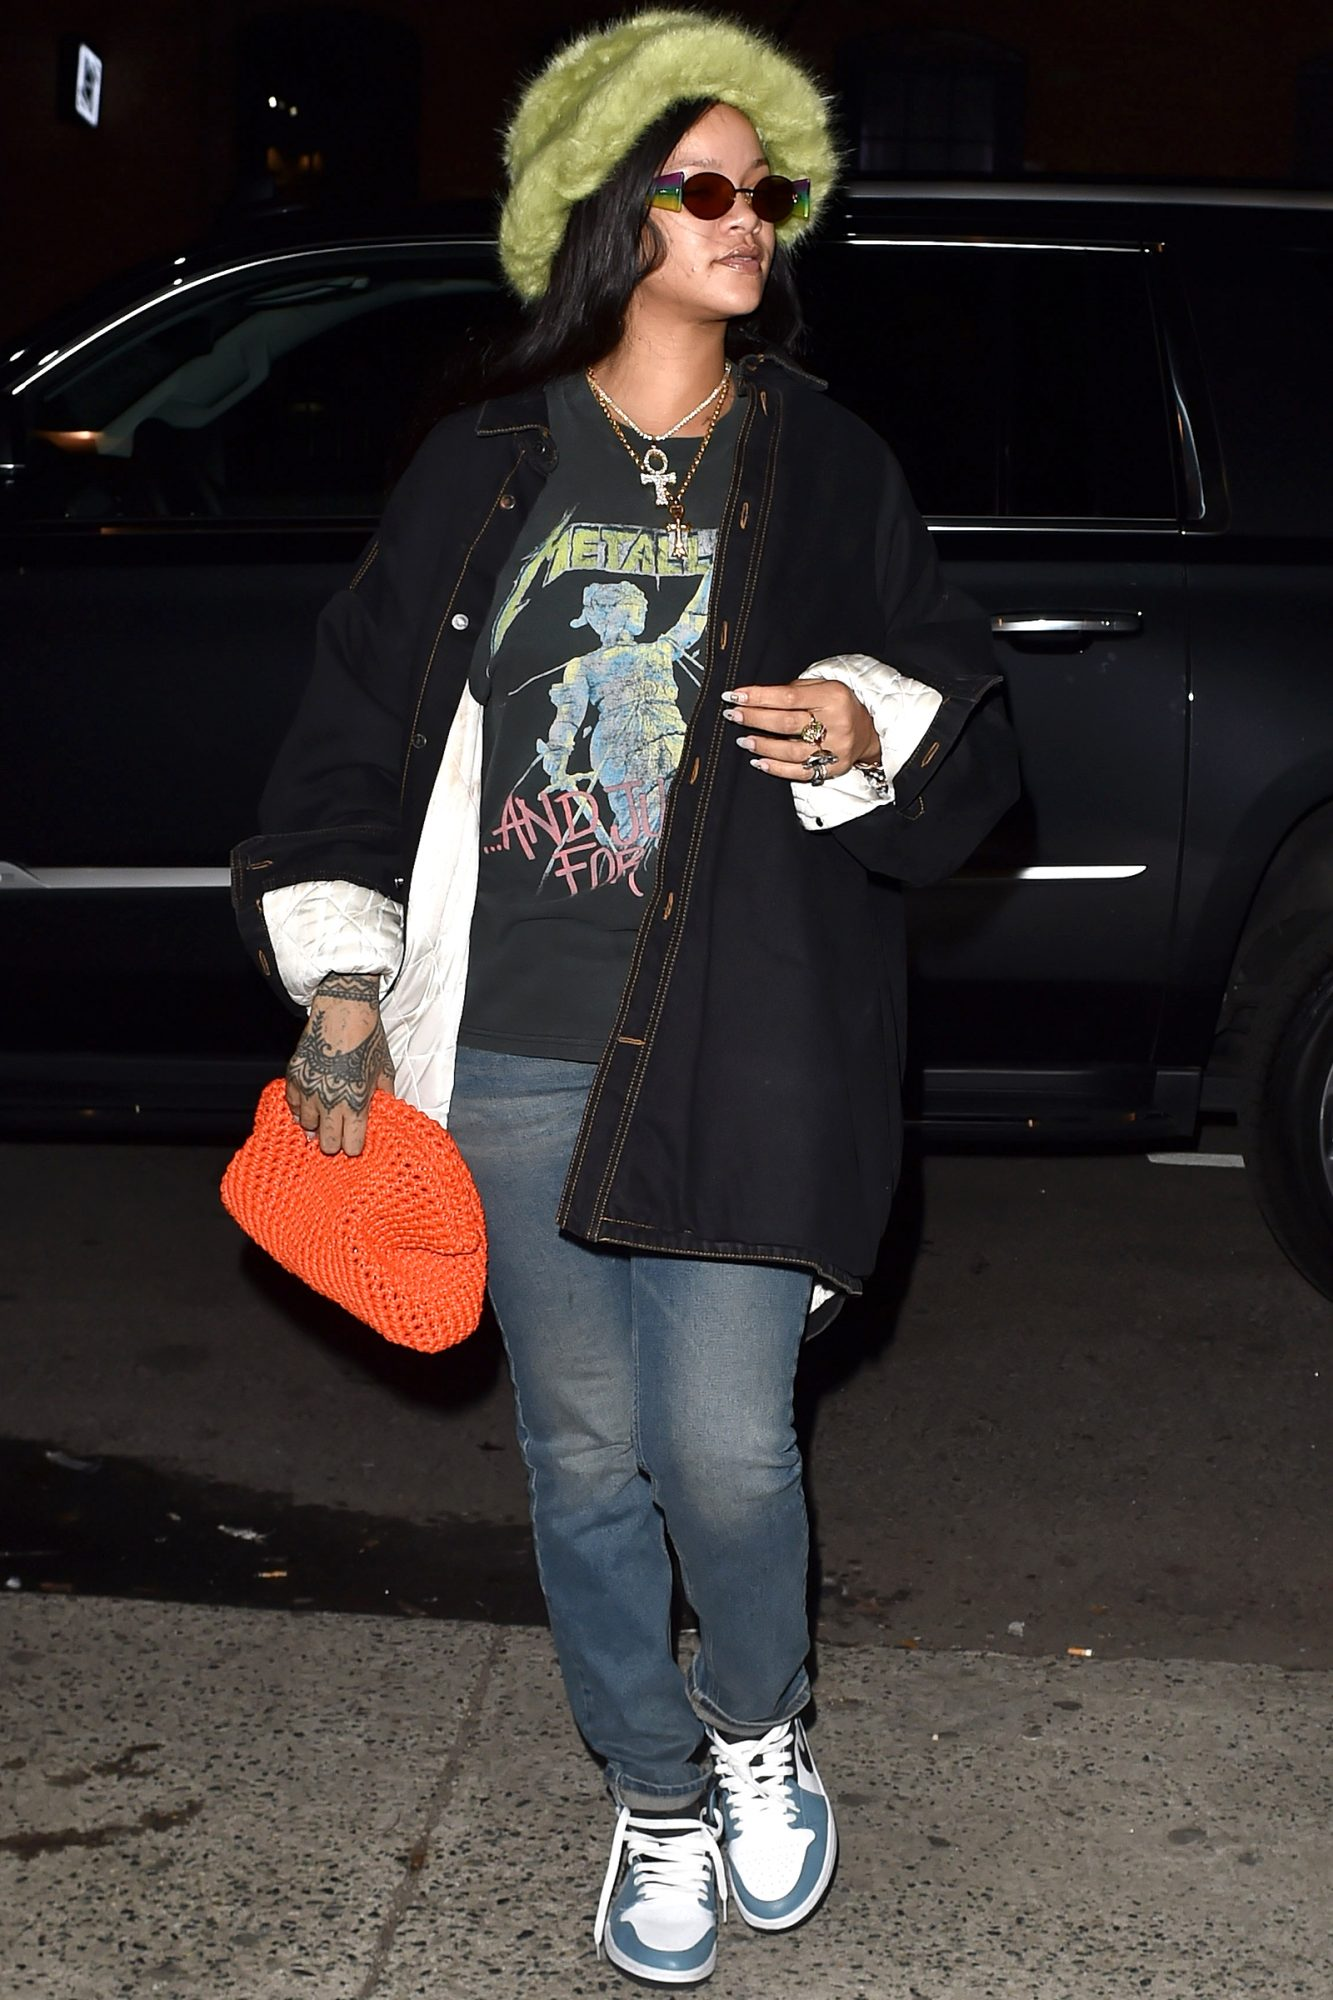 Rihanna Is Seen Out In New York, Rihanna Was Seen Wearing A Bright Green Hat And A Metallica T-Shirt And Jeans As She Took A Trip Downtown.